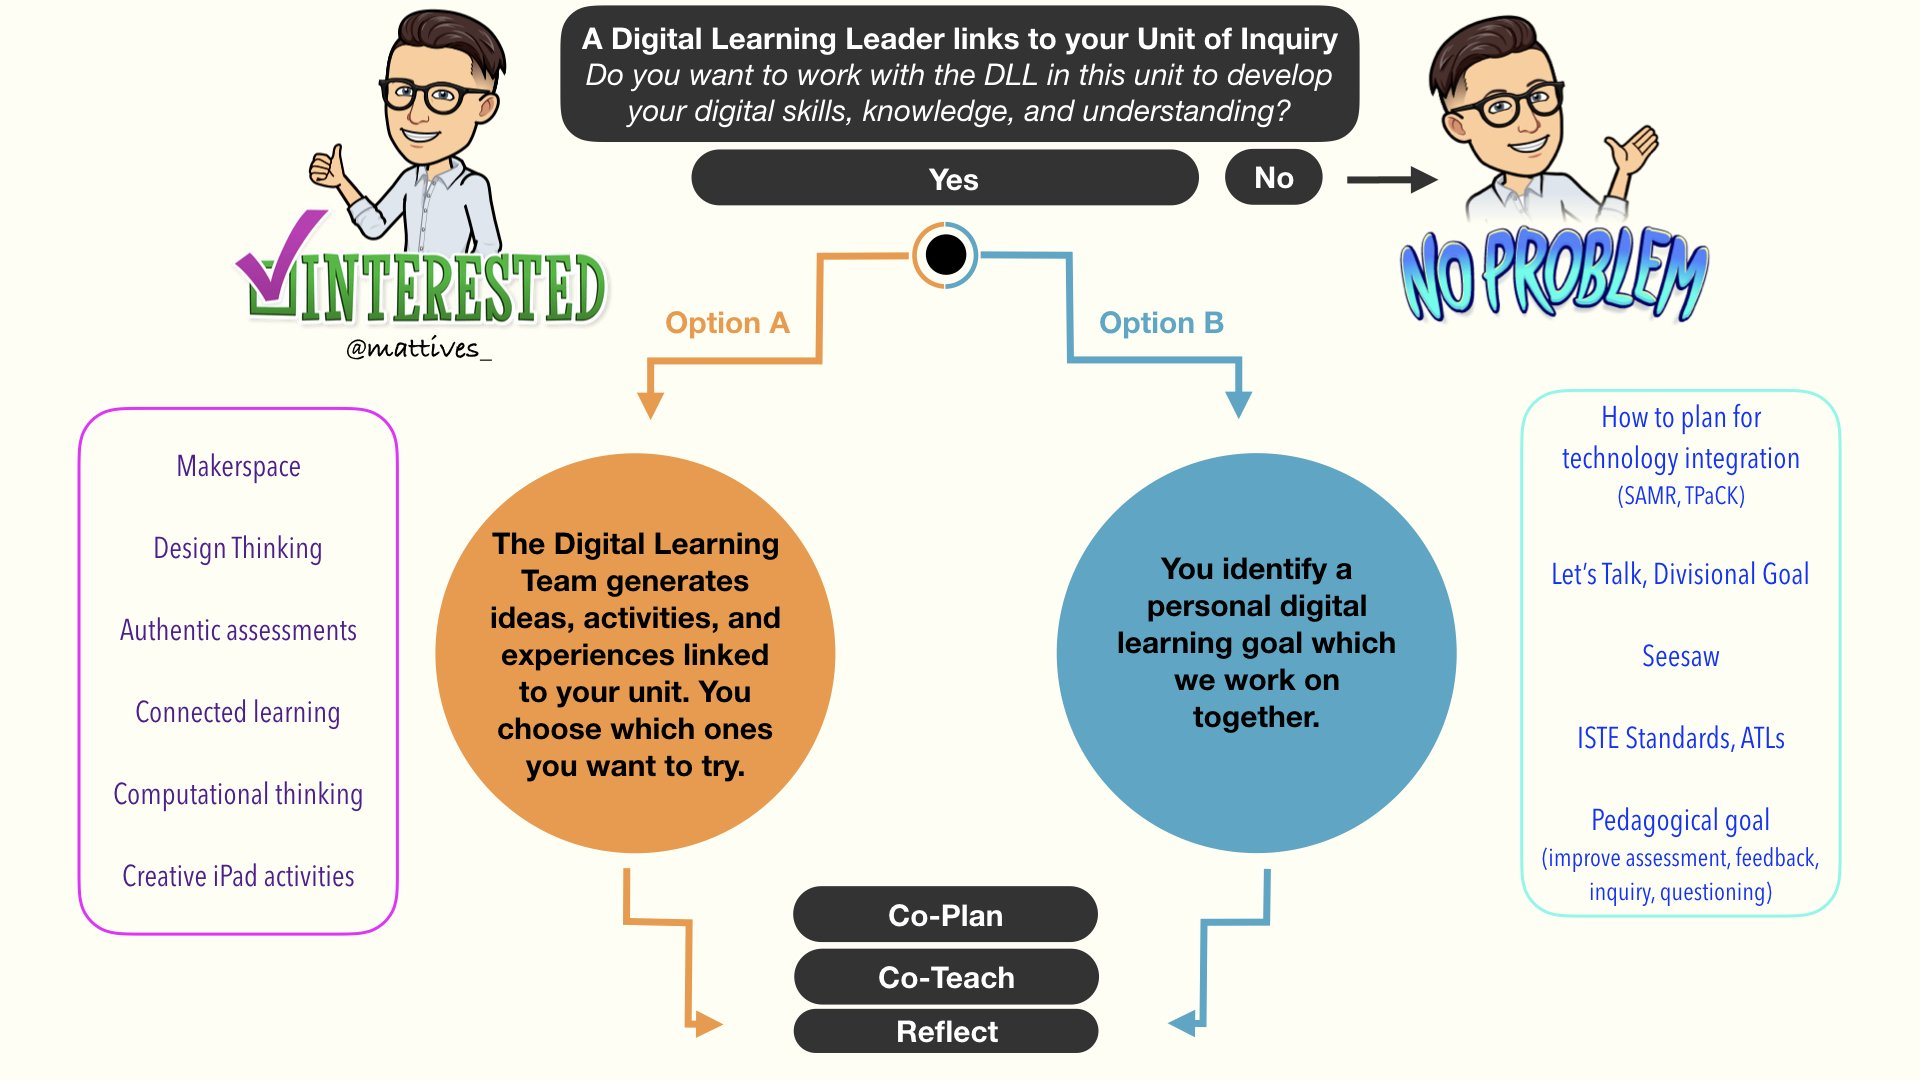 A graphic I created to help teachers understand how/if to kick off a coaching relationship with a digital learning coach, stemming from a #PYP Unit of Inquiry. Thoughts? Feedback? #ISedCoach #TechCoach  #ISTEglobalPLN #PYPchat https://t.co/s5VZhV4vvq